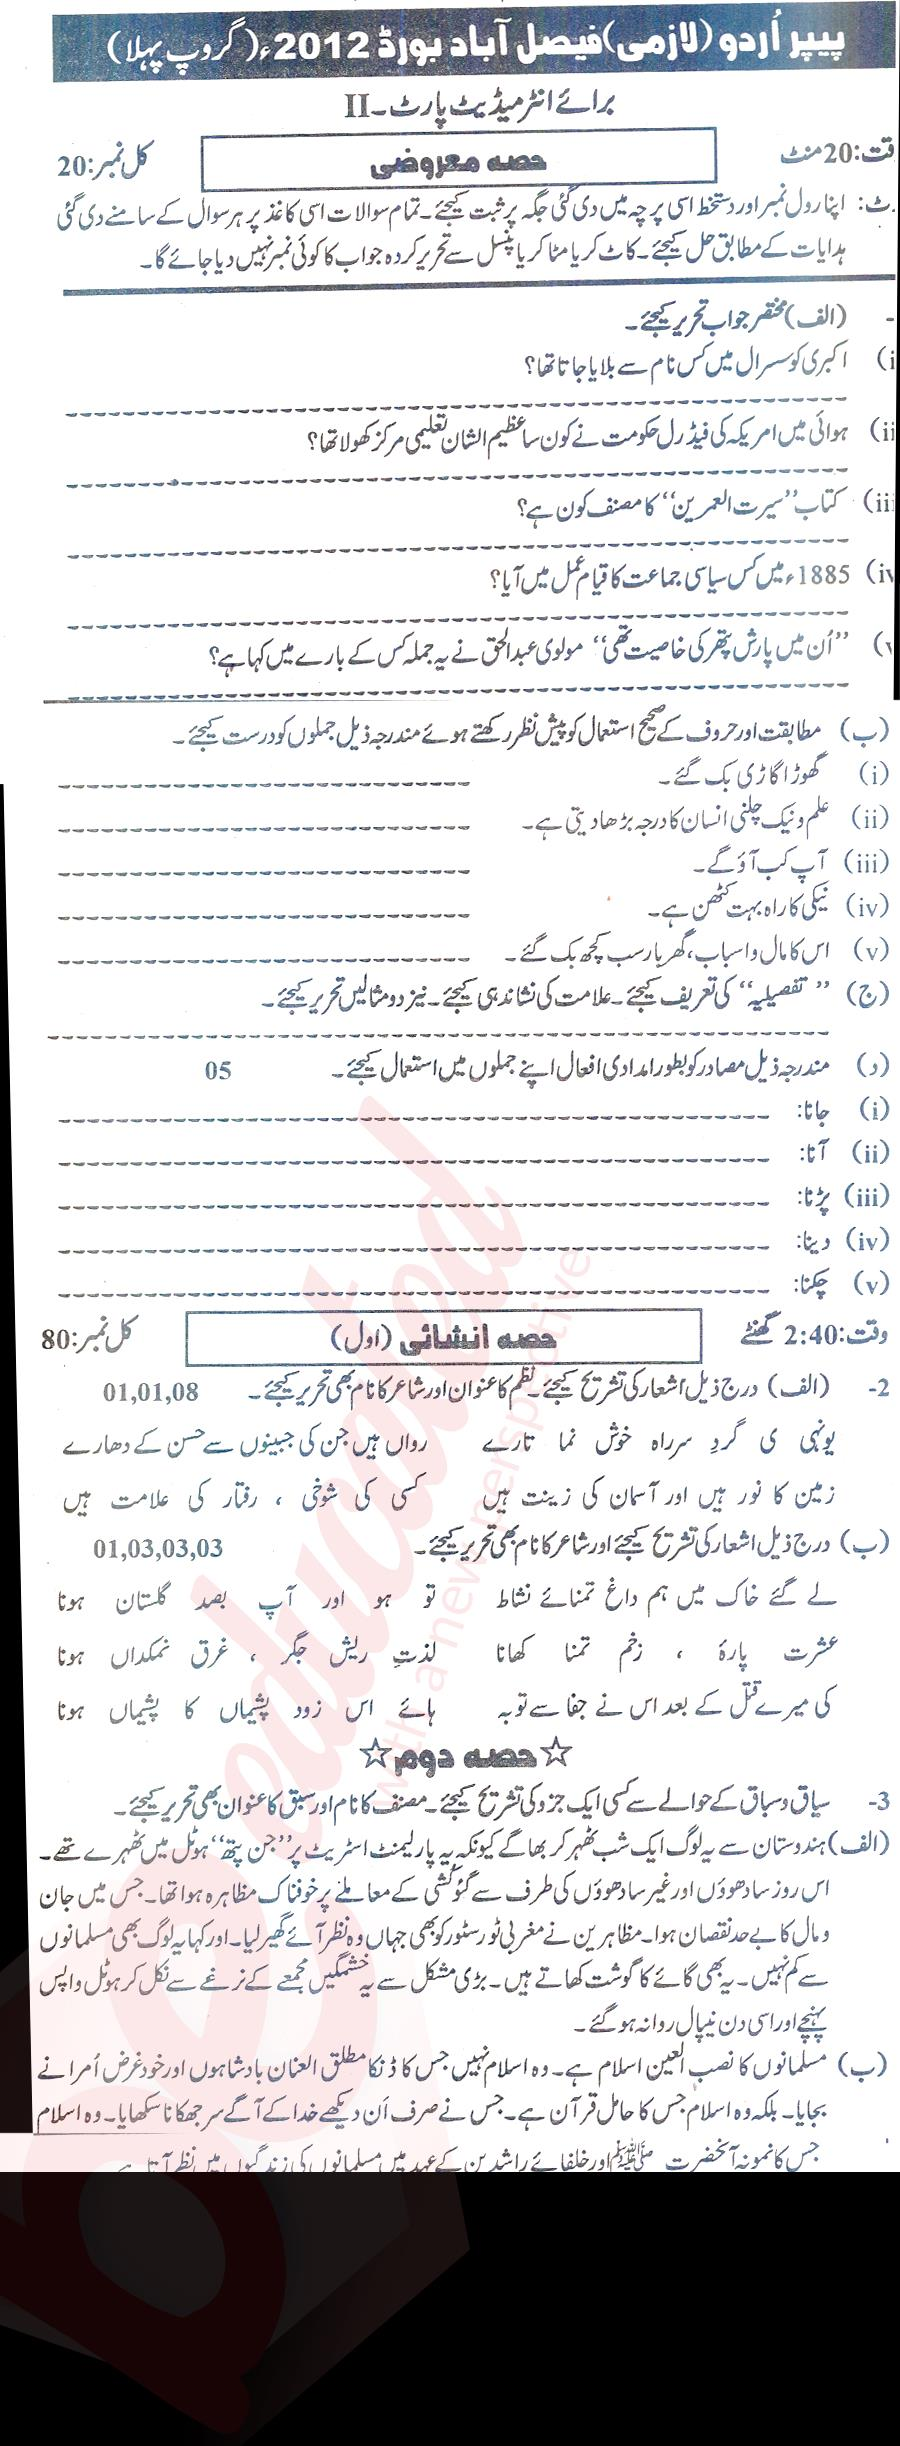 essay on faisalabad Essays for metric+fa students of faisalabad board our purpose is to provide you free and best sources for your education we need your feed back to improve ourselvesif you need essay or any other material on any subject of fa fsc and metric contact us we should try our best to provide you the context  my best friend.